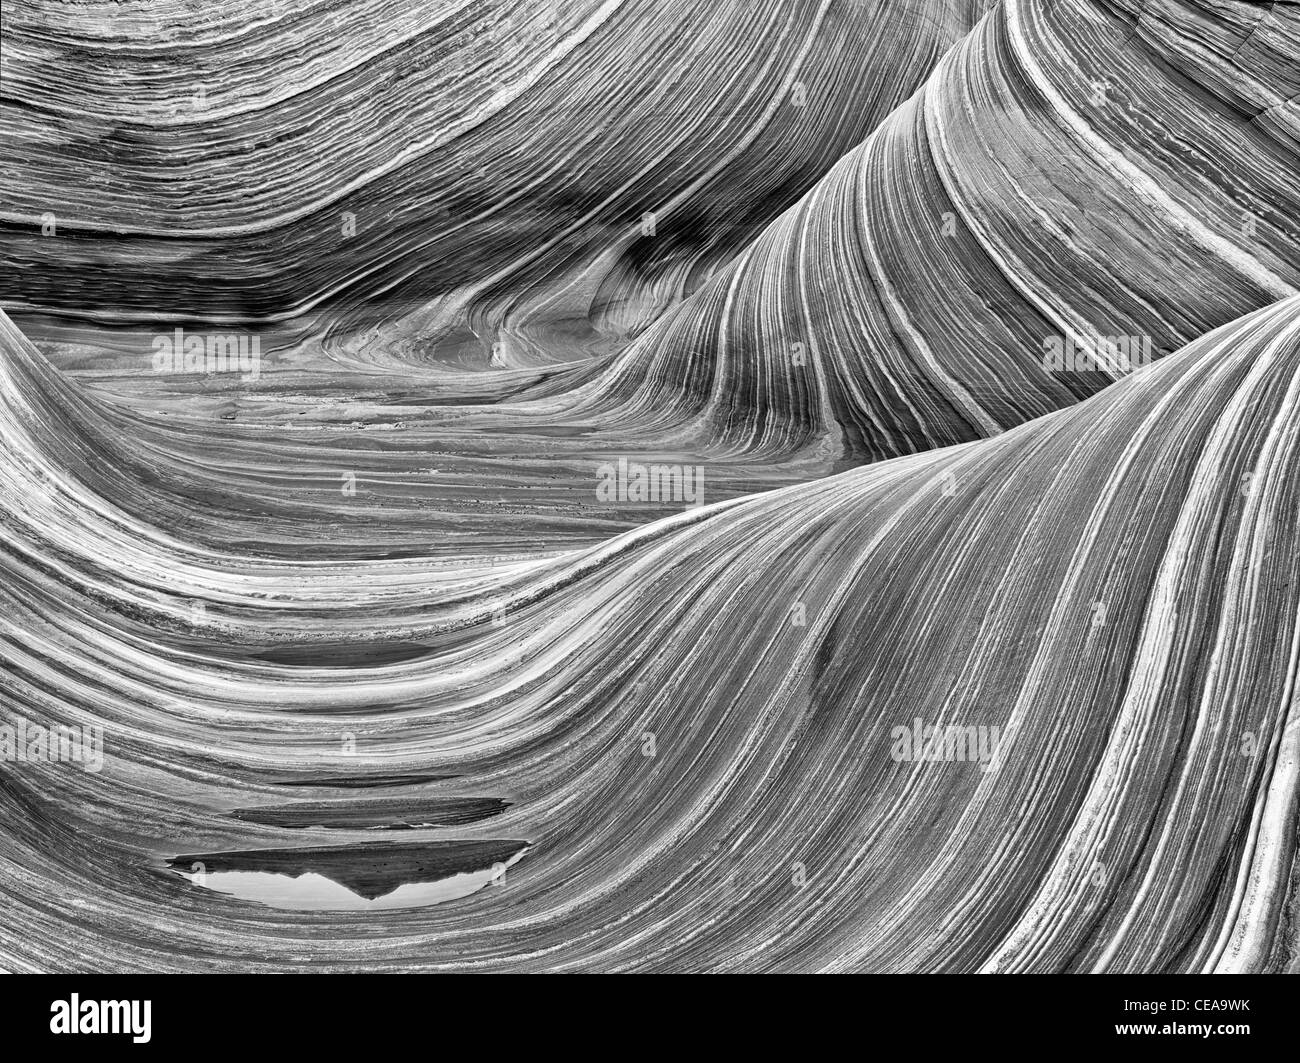 Sandtone formation and pool of water in North Coyote Buttes, The Wave. Paria Canyon Vermillion Cliffs Wilderness. Stock Photo